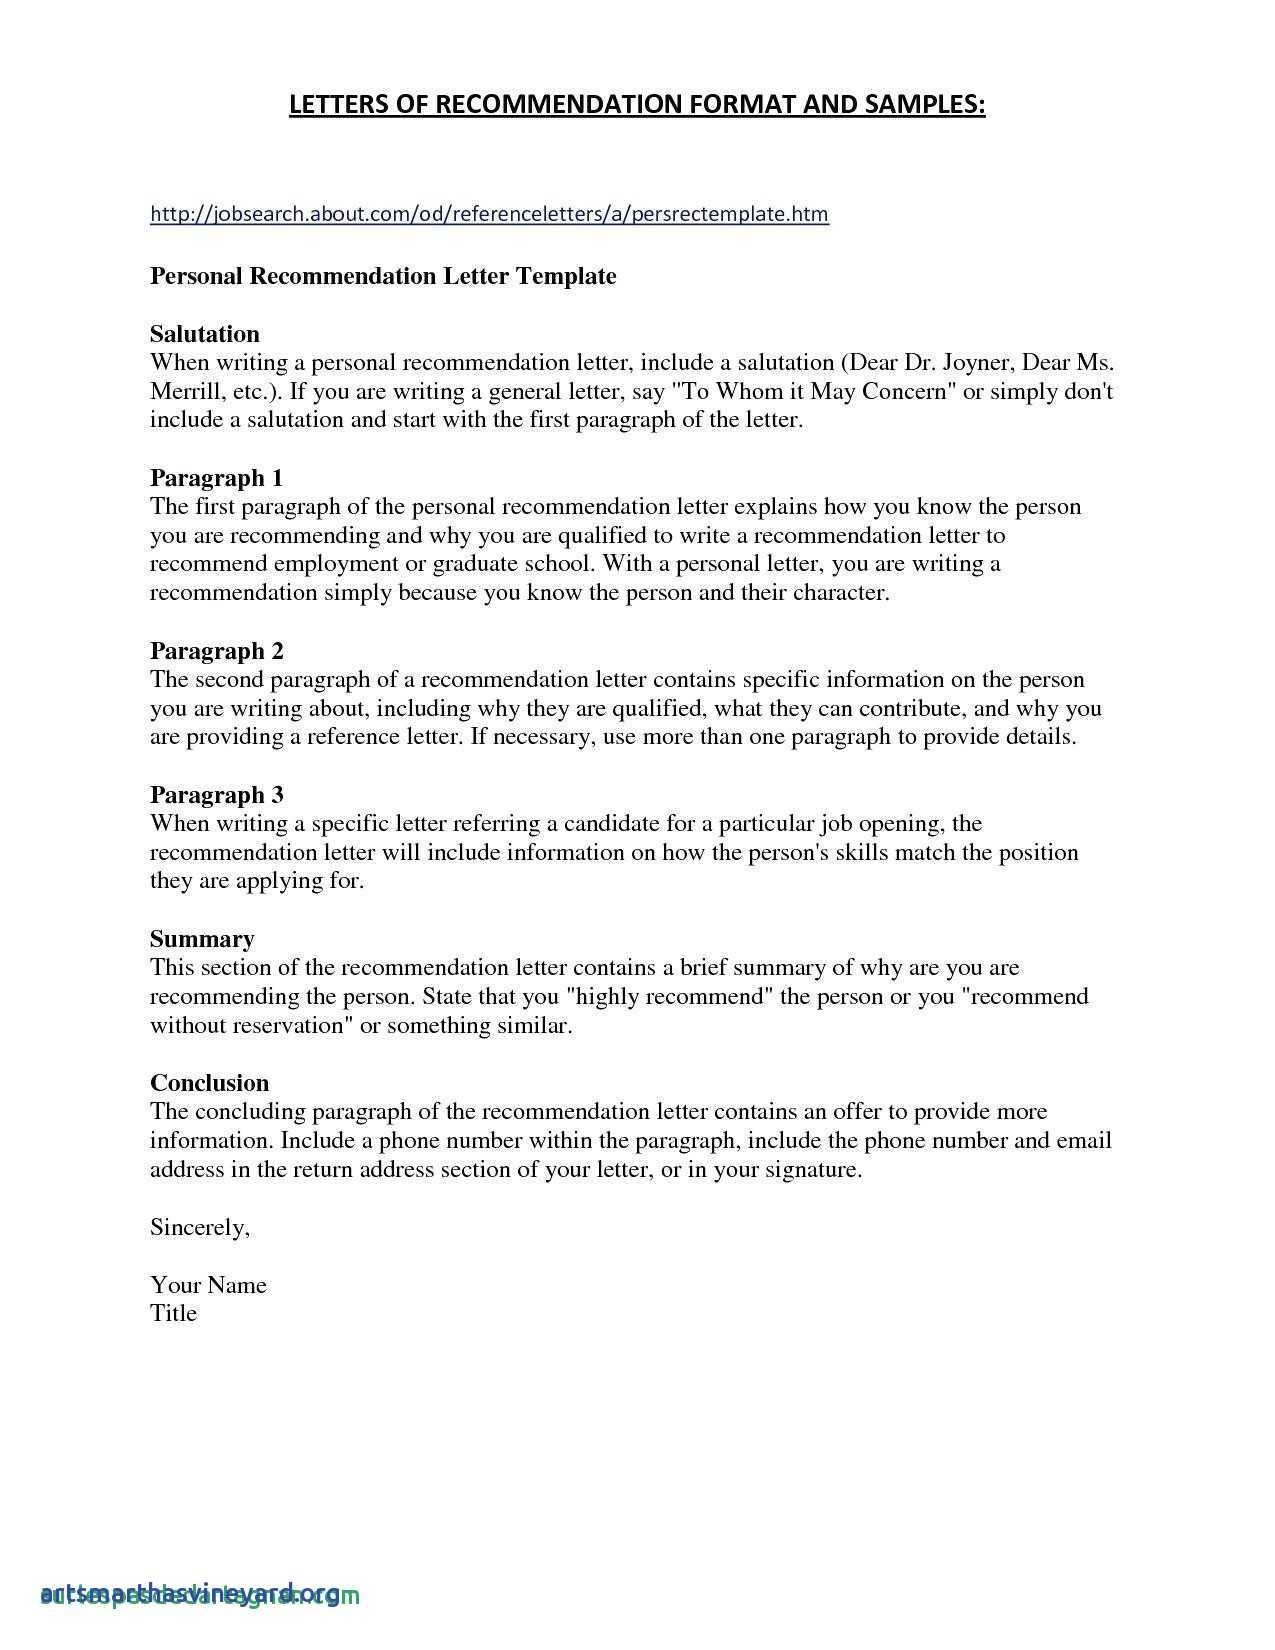 letter of recommendation template for graduate school Collection-Re mendation Letter Sample For Graduate School From Friend New Re Mendation Letter For Scholarship From Employer Unique Fresh 1-s